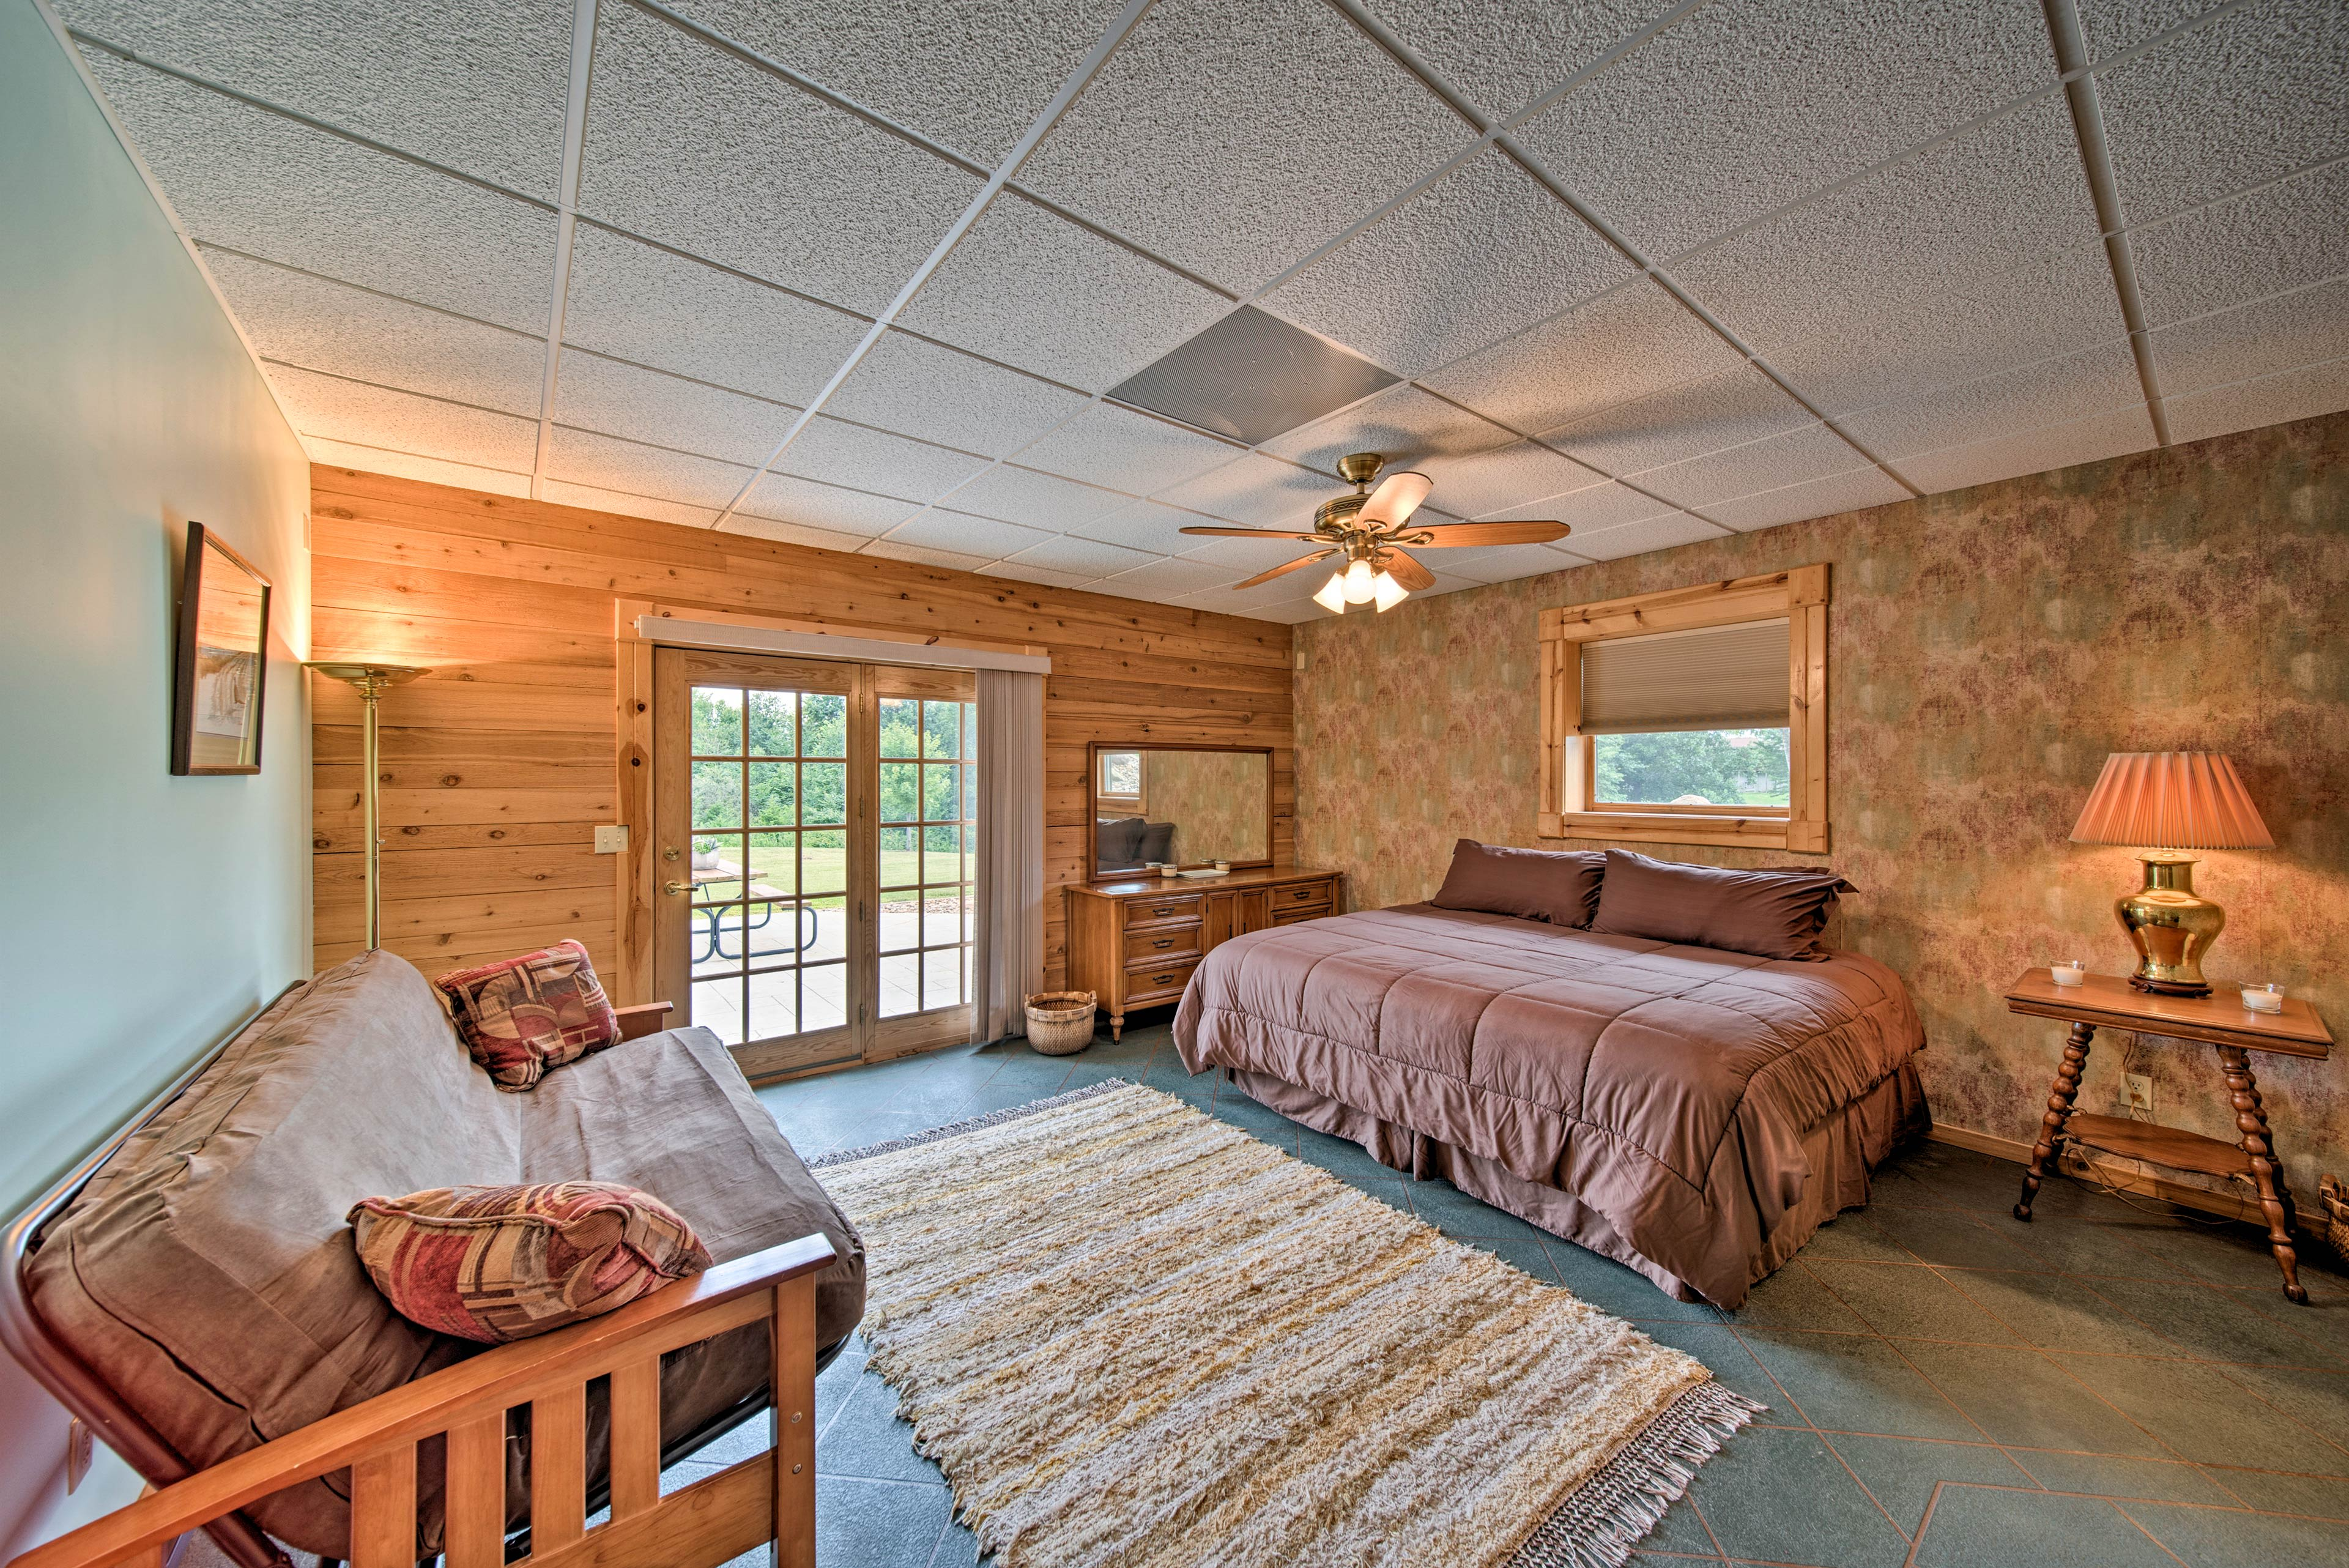 Open the private patio door to let fresh air flow into the master bedroom!